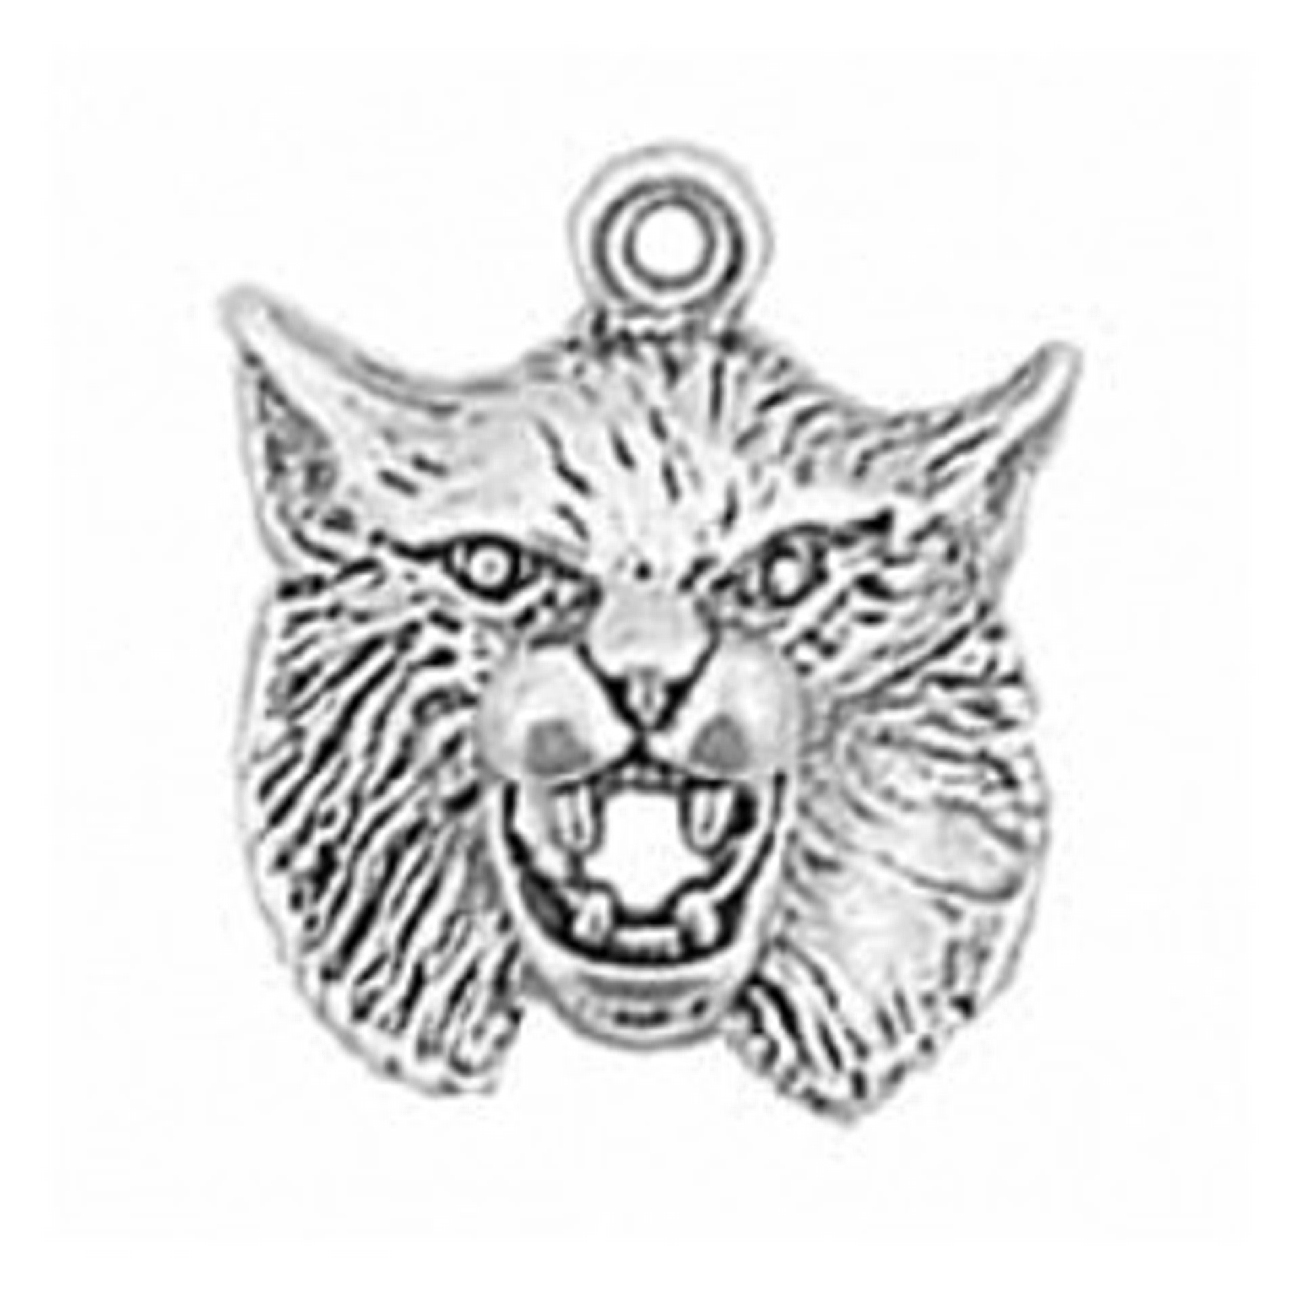 3D Detailed Team Mascot Lynx Bobcat Cat Charm With Hollow Back